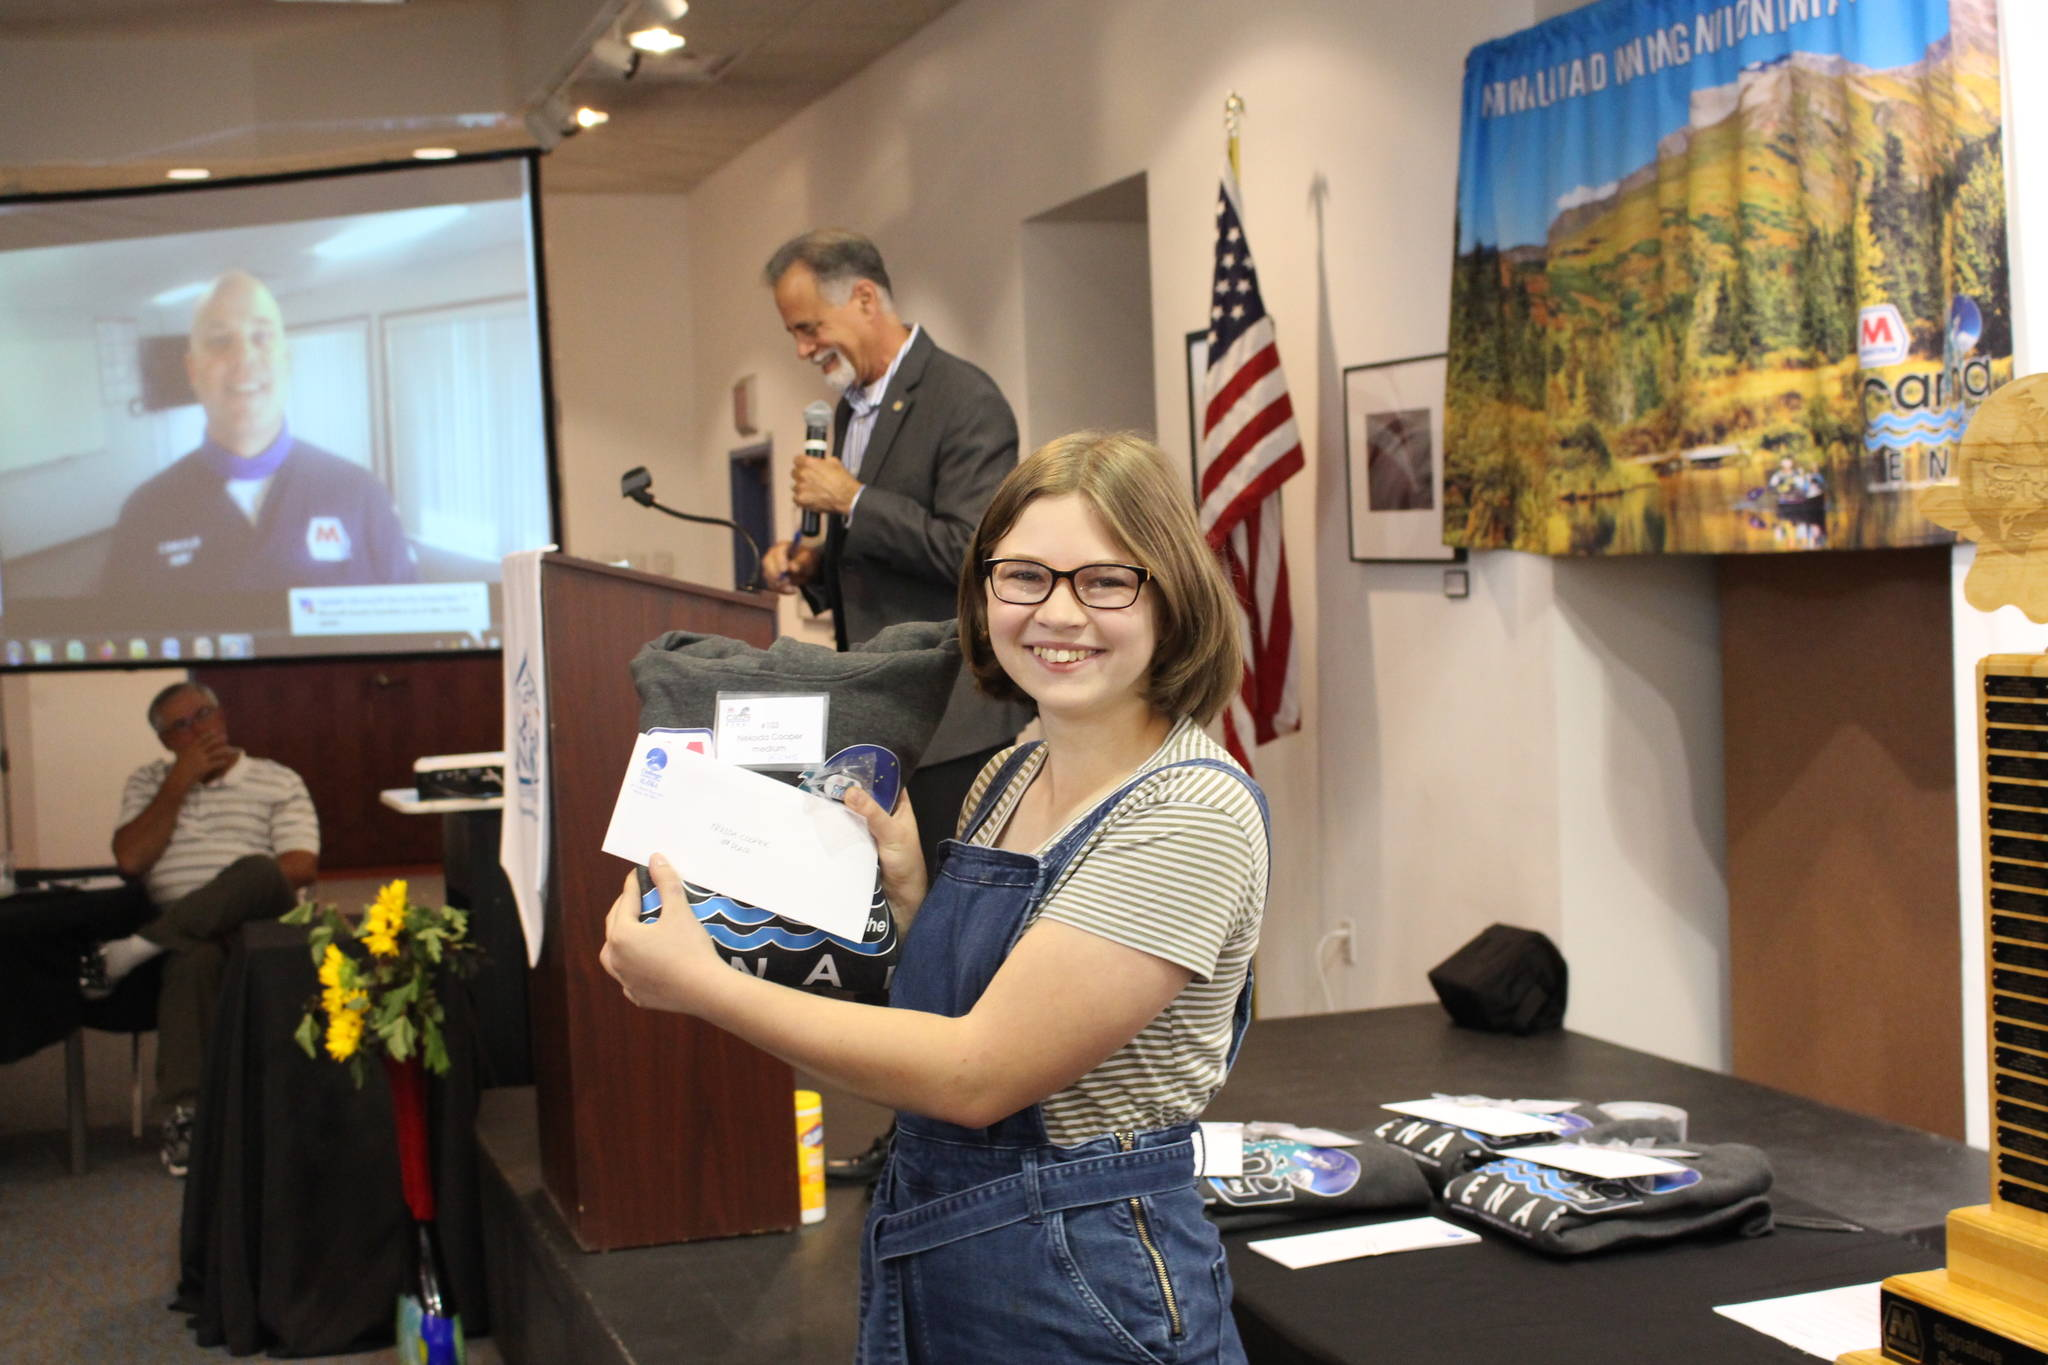 Nekoda Cooper smiles with her award for being a Caring for the Kenai Finalist during the Caring for the Kenai Awards Ceremony at the Kenai Visitor Center on Aug. 19, 2020. (Photo by Brian Mazurek/Peninsula Clarion)